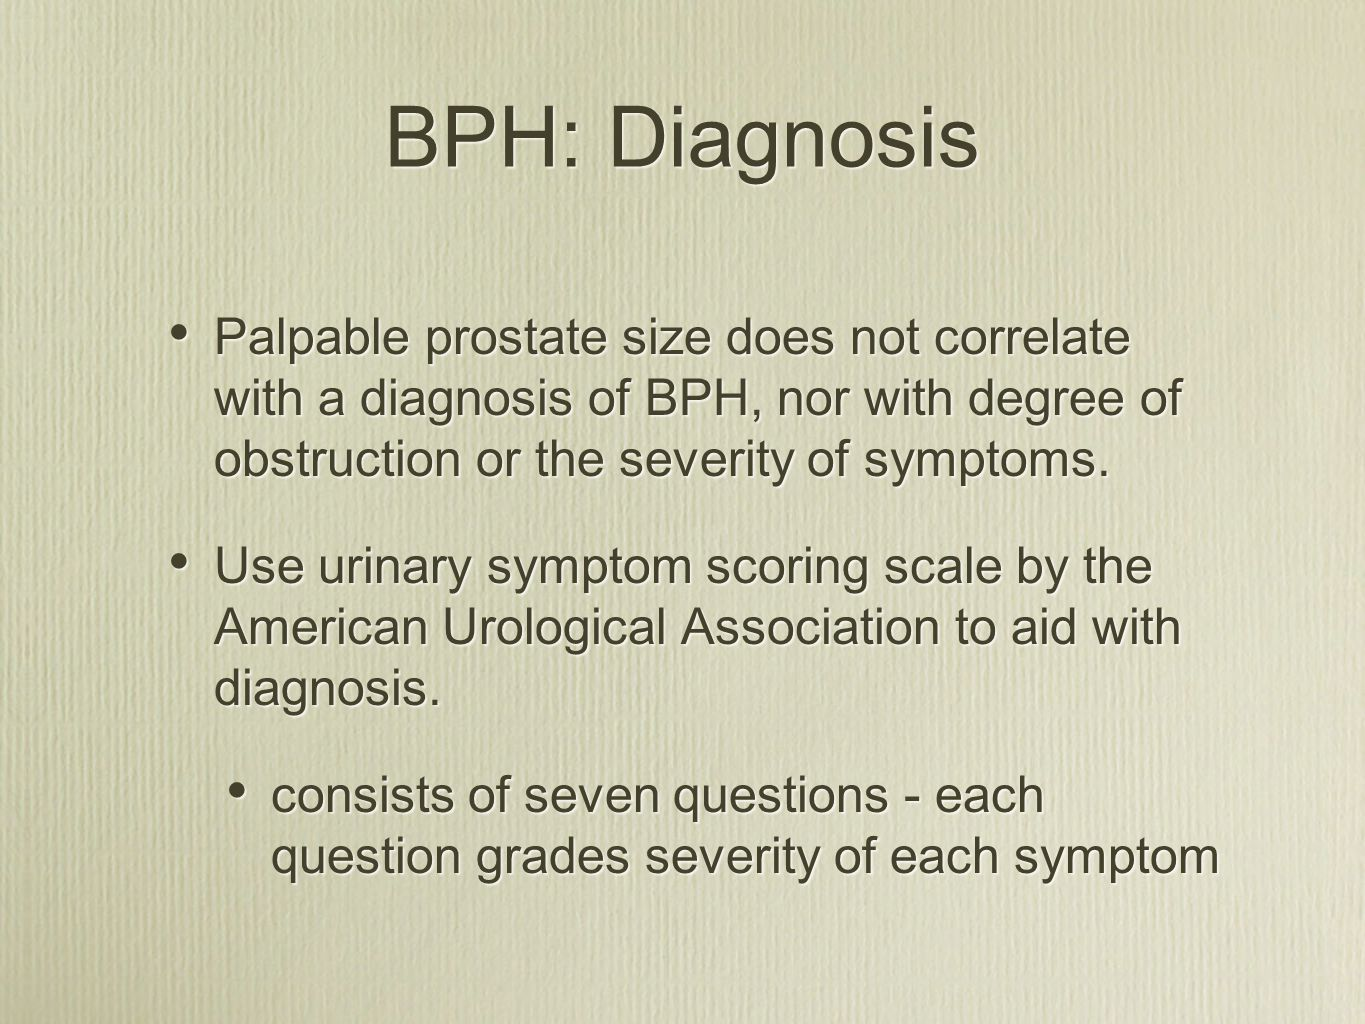 BPH: Diagnosis Palpable prostate size does not correlate with a diagnosis of BPH, nor with degree of obstruction or the severity of symptoms.